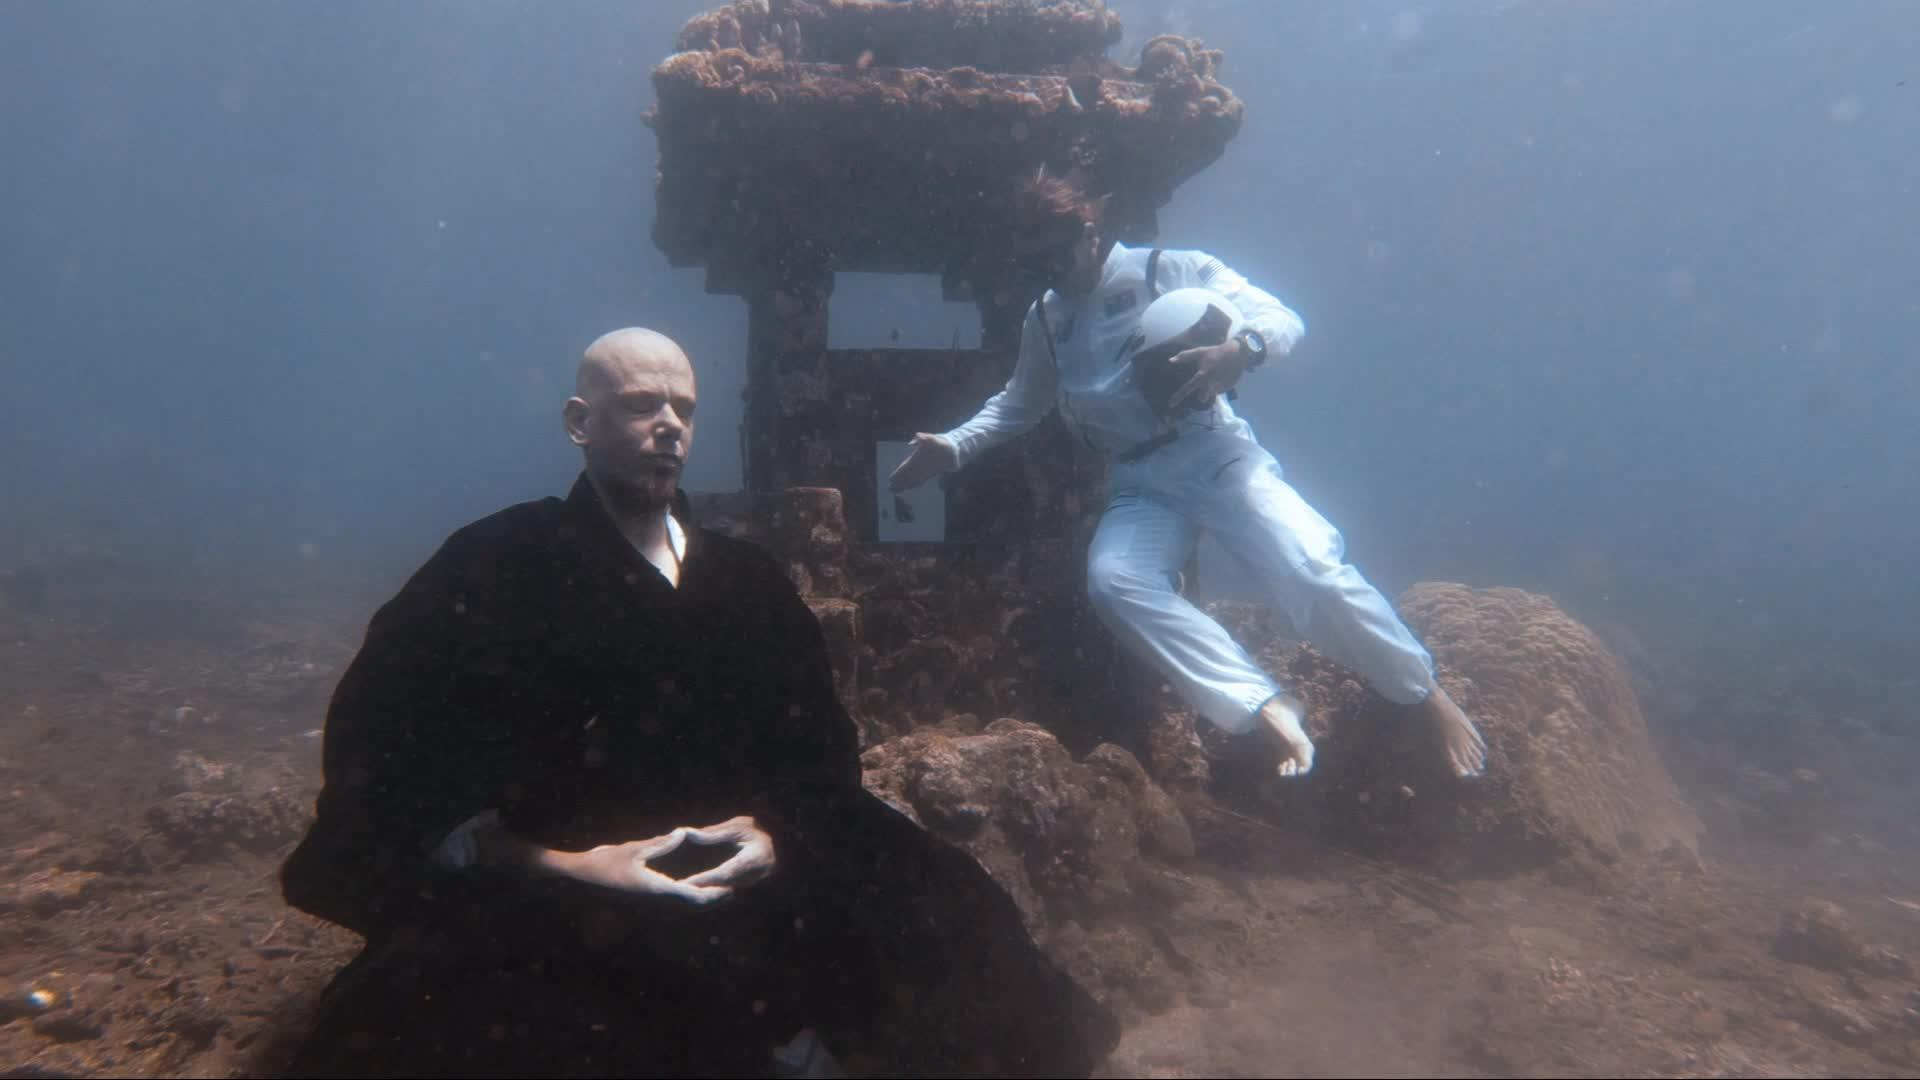 Monk Holds Breath and Meditates Next to Underwater Temple | Jukin Media Inc